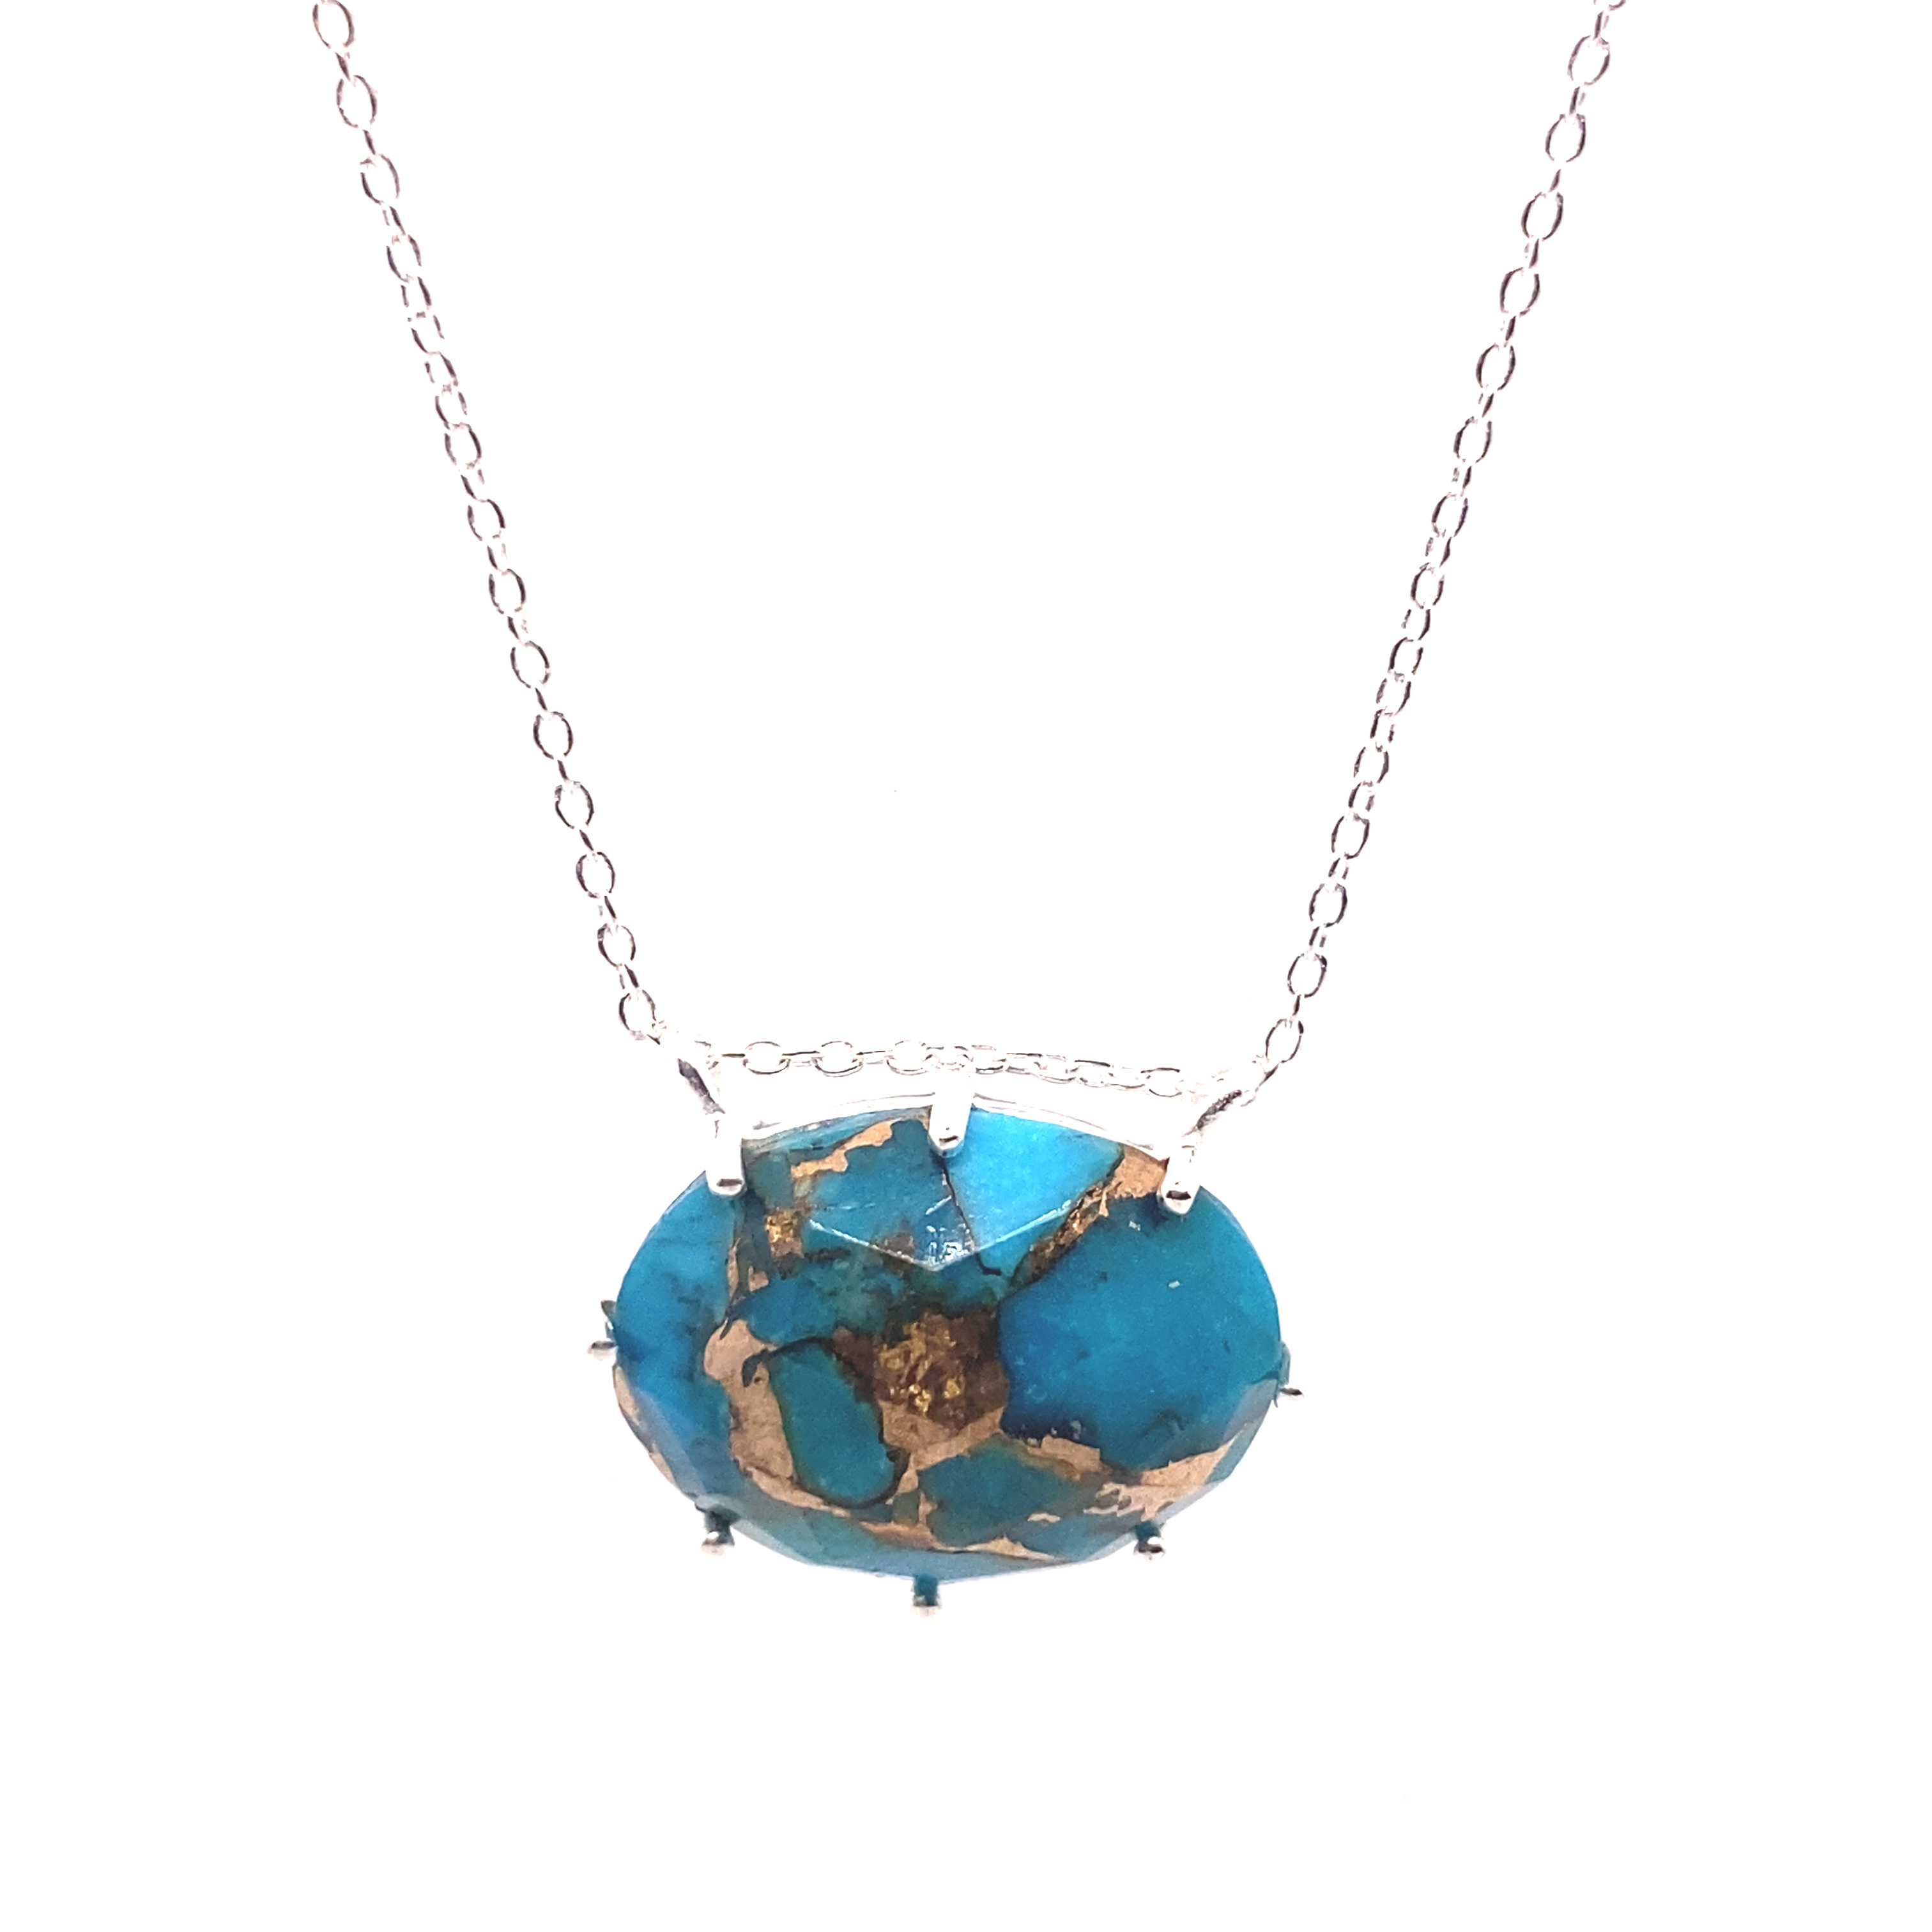 Erin | Copper Turquoise Necklace in Sterling Silver